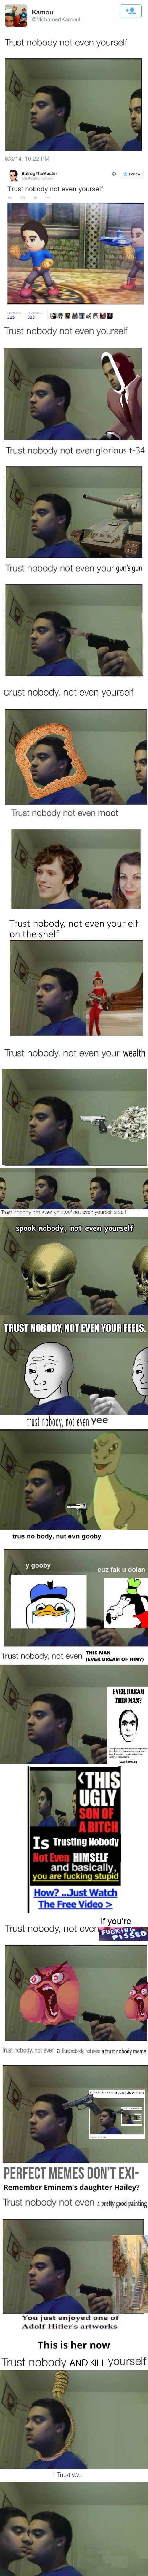 Trust Nobody Not Even Yourself Template / The universe is an inevitable pit of suffering and despair.